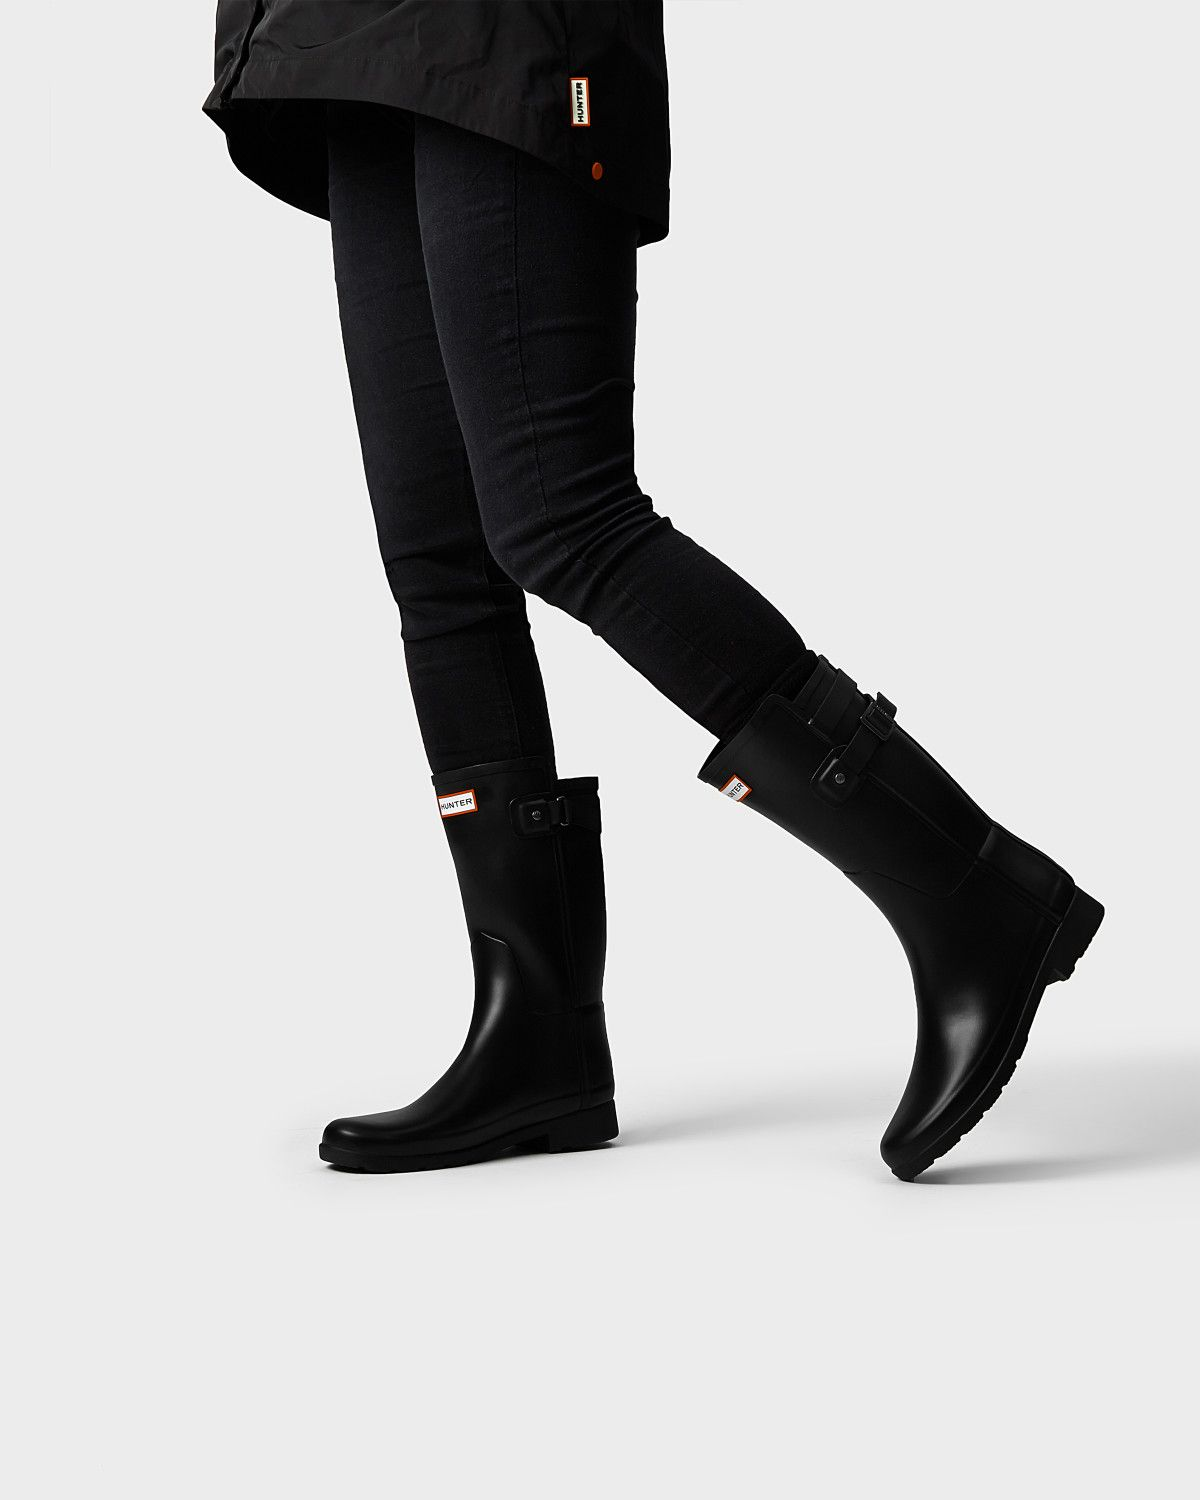 35a809d5f5e Womens Black Short Refined Rain Boots | Official Hunter Boots Store ...